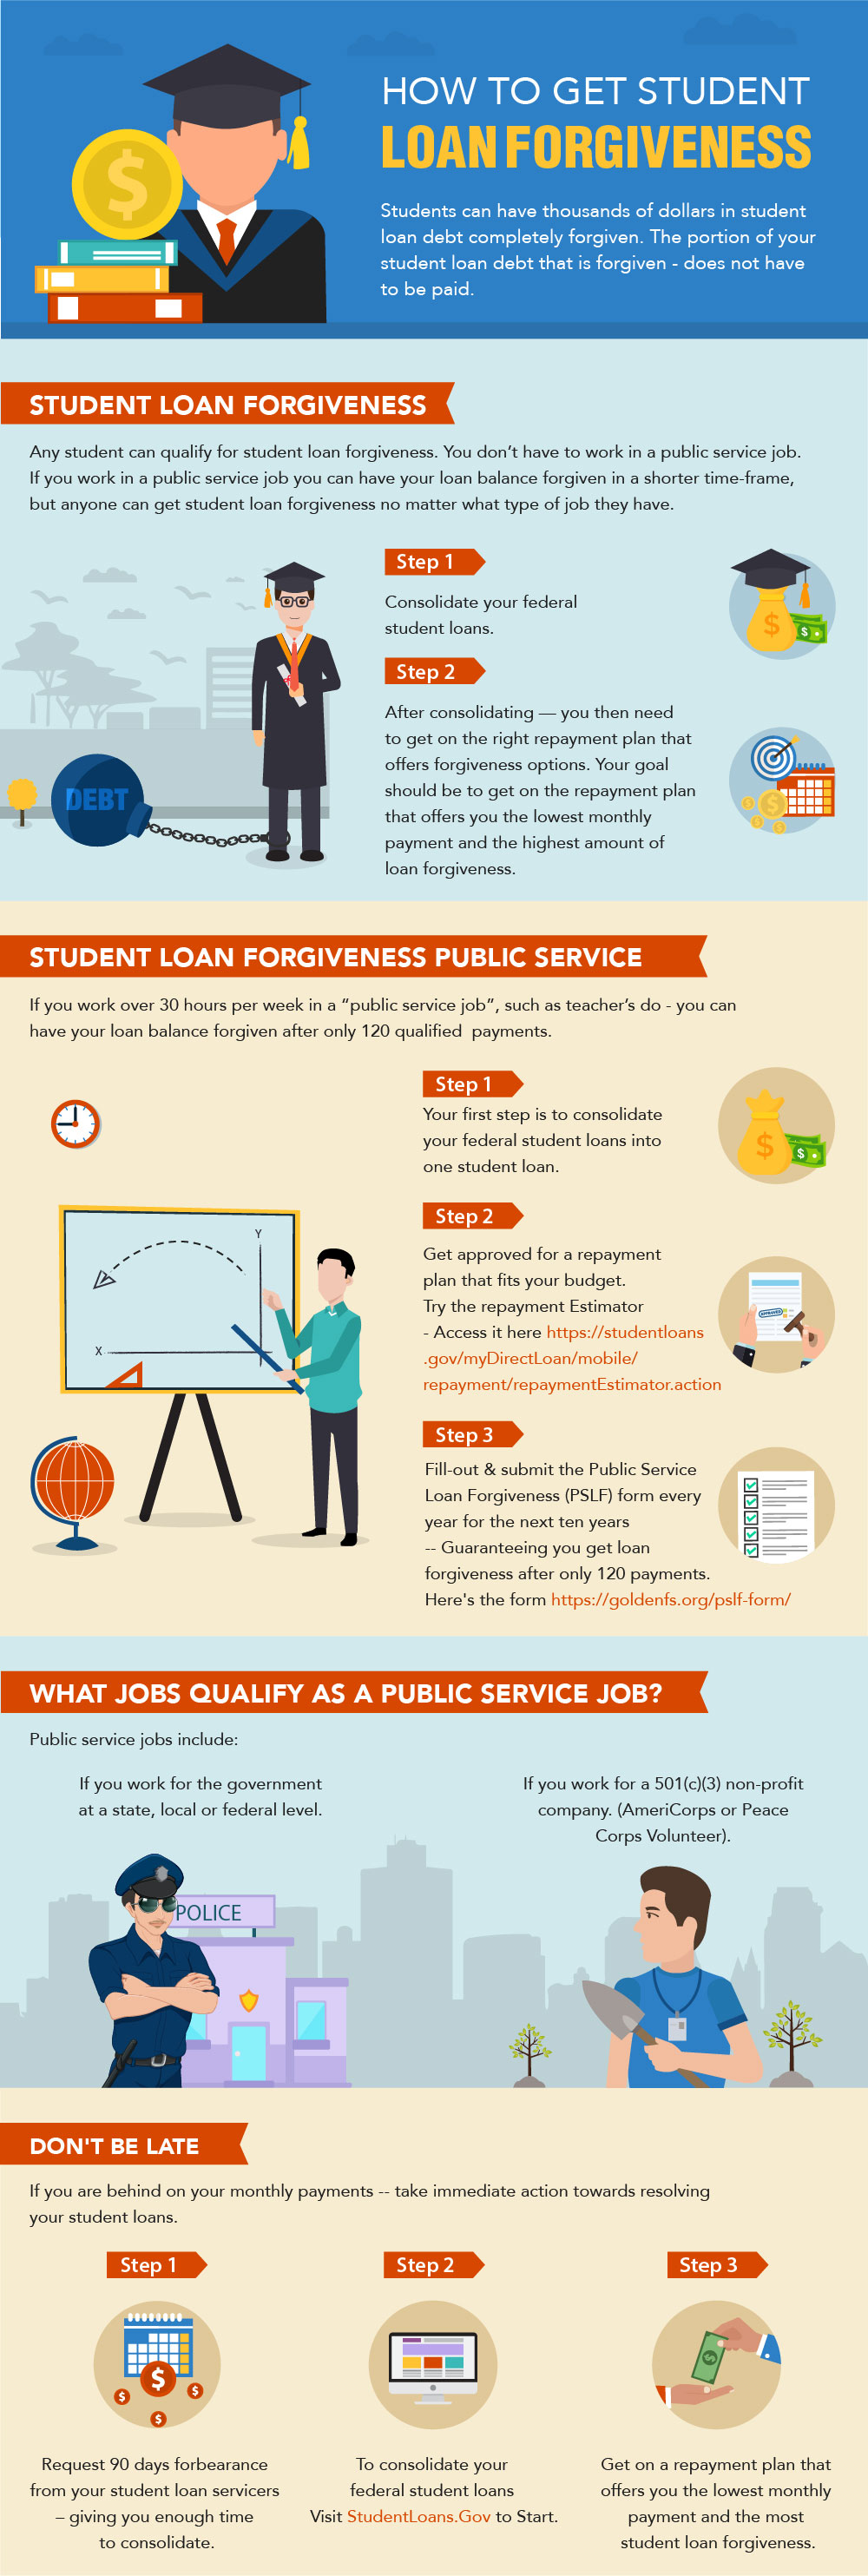 STUDENT LOAN FORGIVENESS INFOGRAPHIC